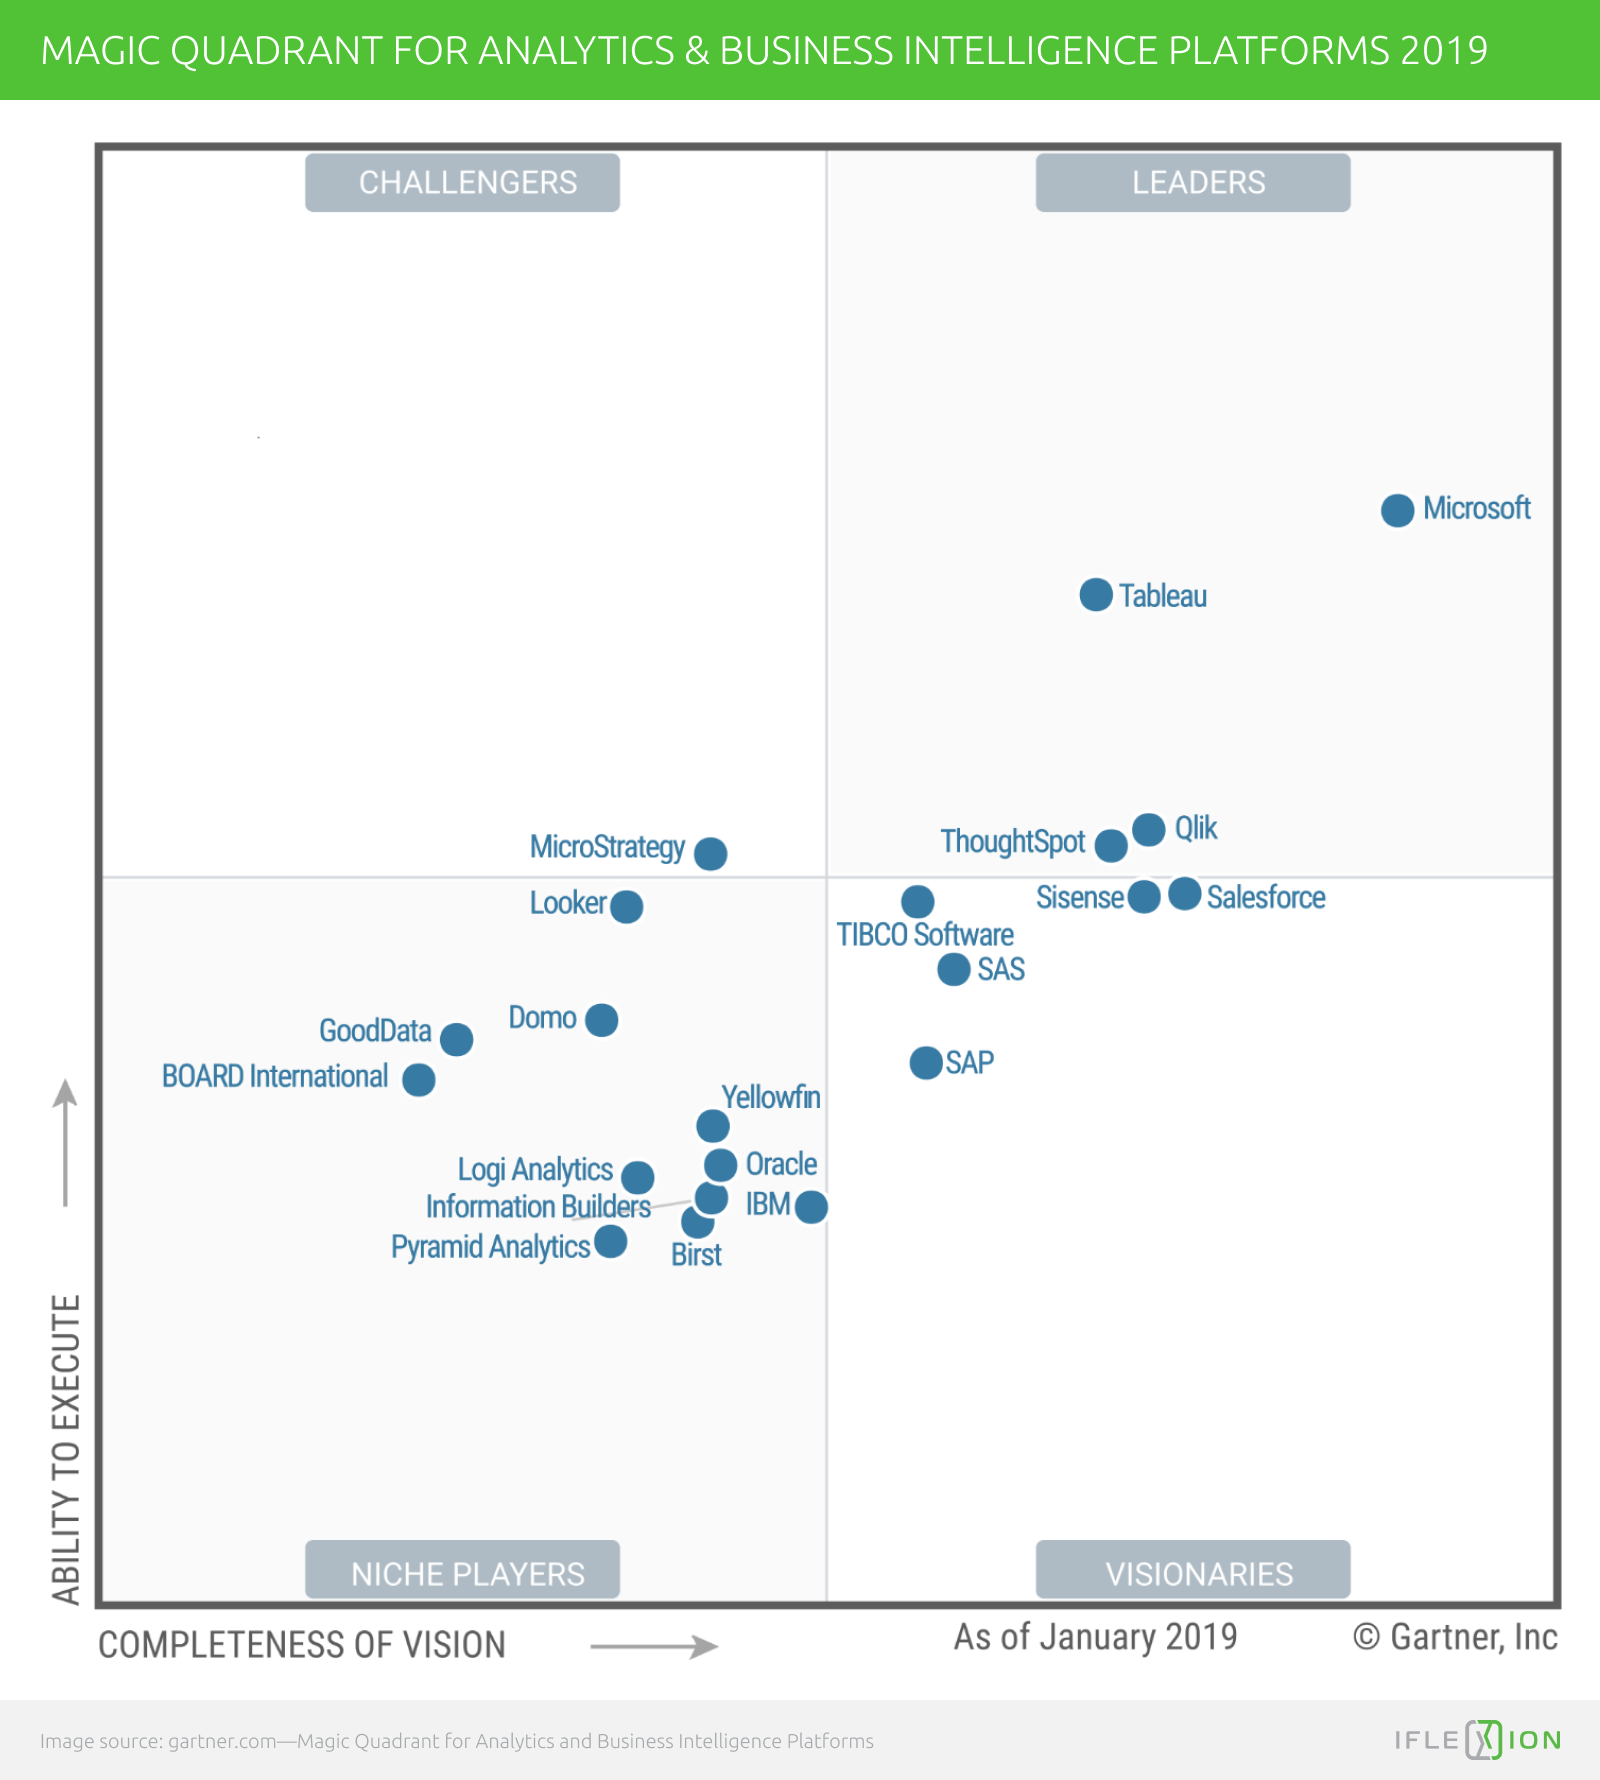 Power BI and Tableau. Who Leads in 2019? - Iflexion